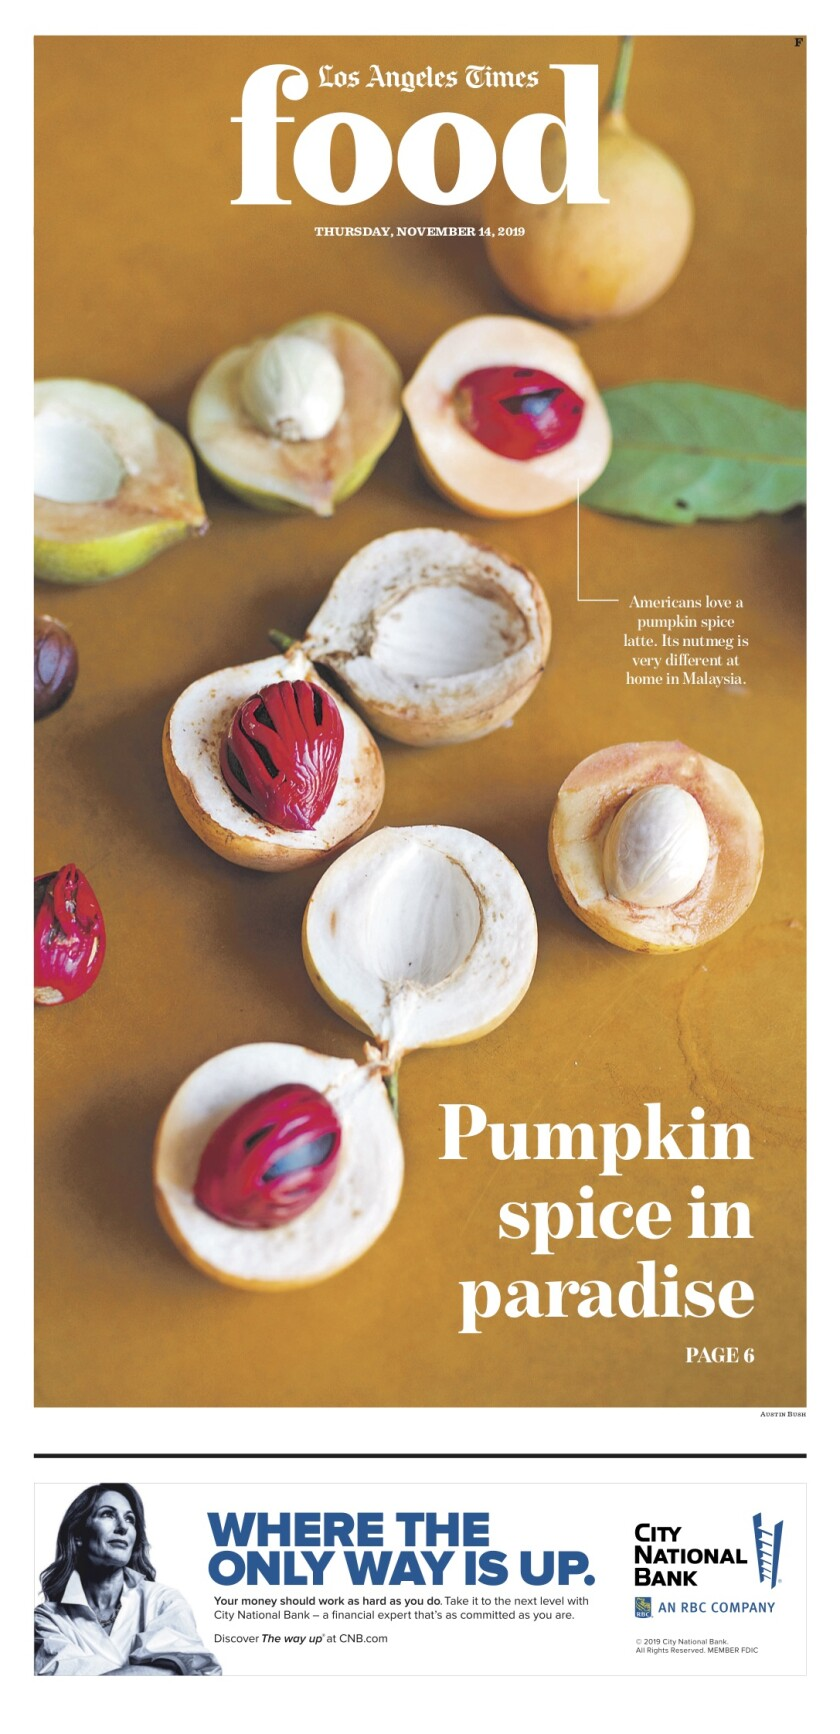 Los Angeles Times Food cover, November 14, 2019